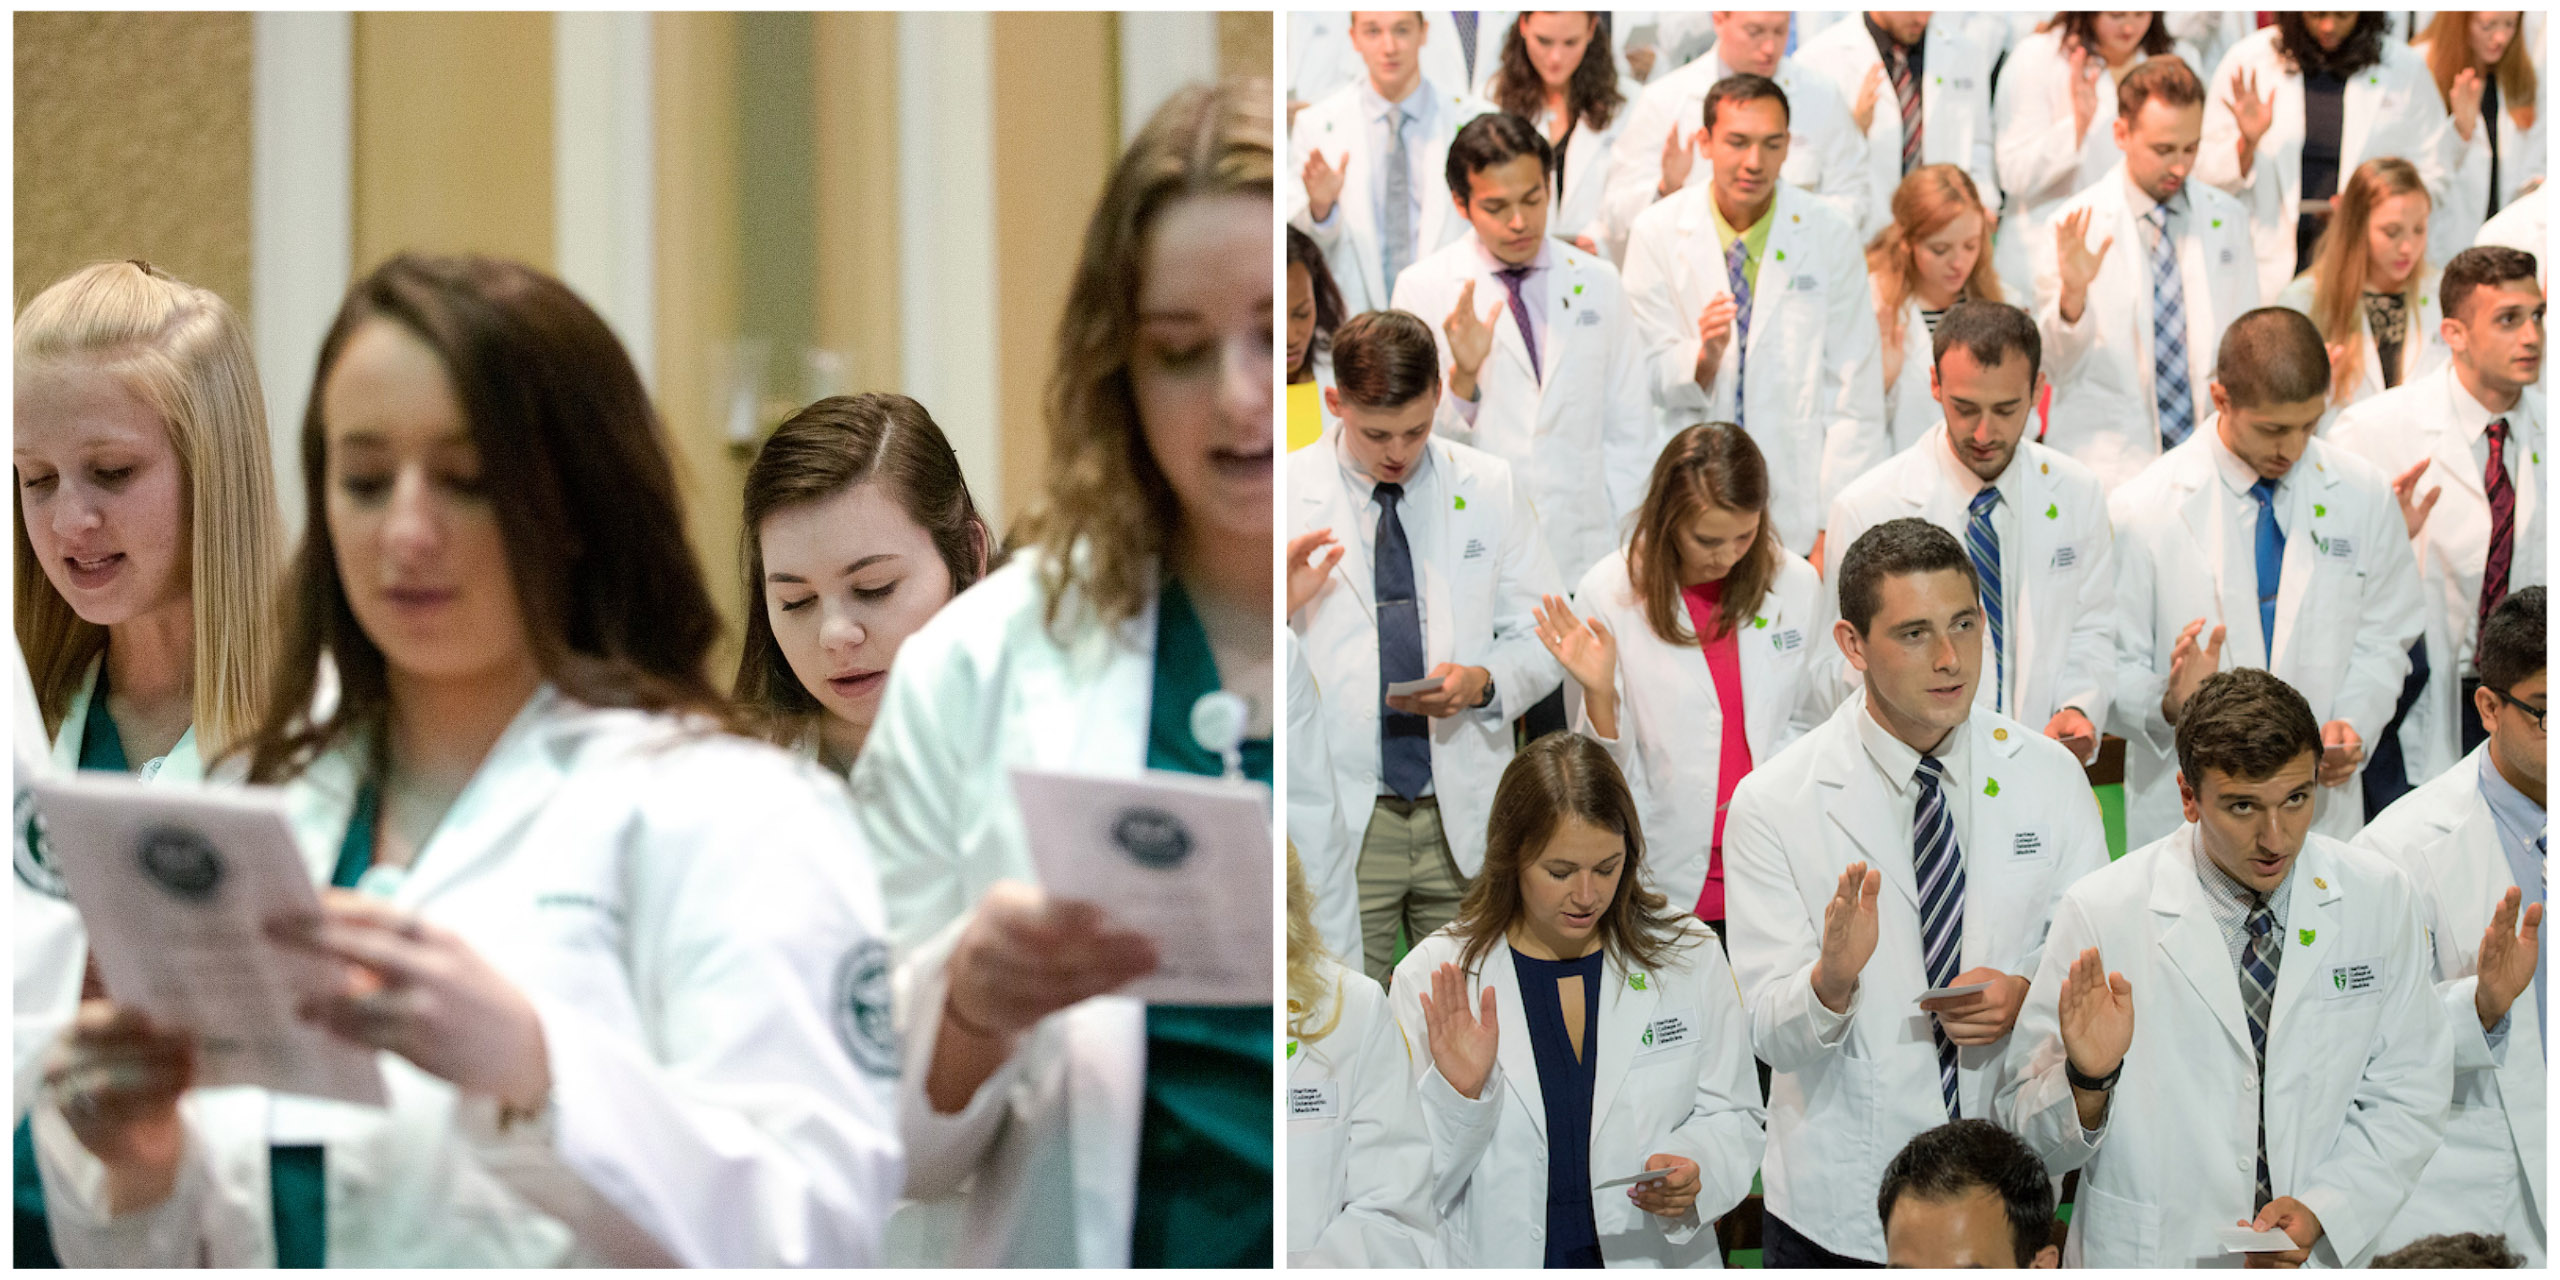 Nursing and medical students will receive their degrees a few weeks early in 2020.